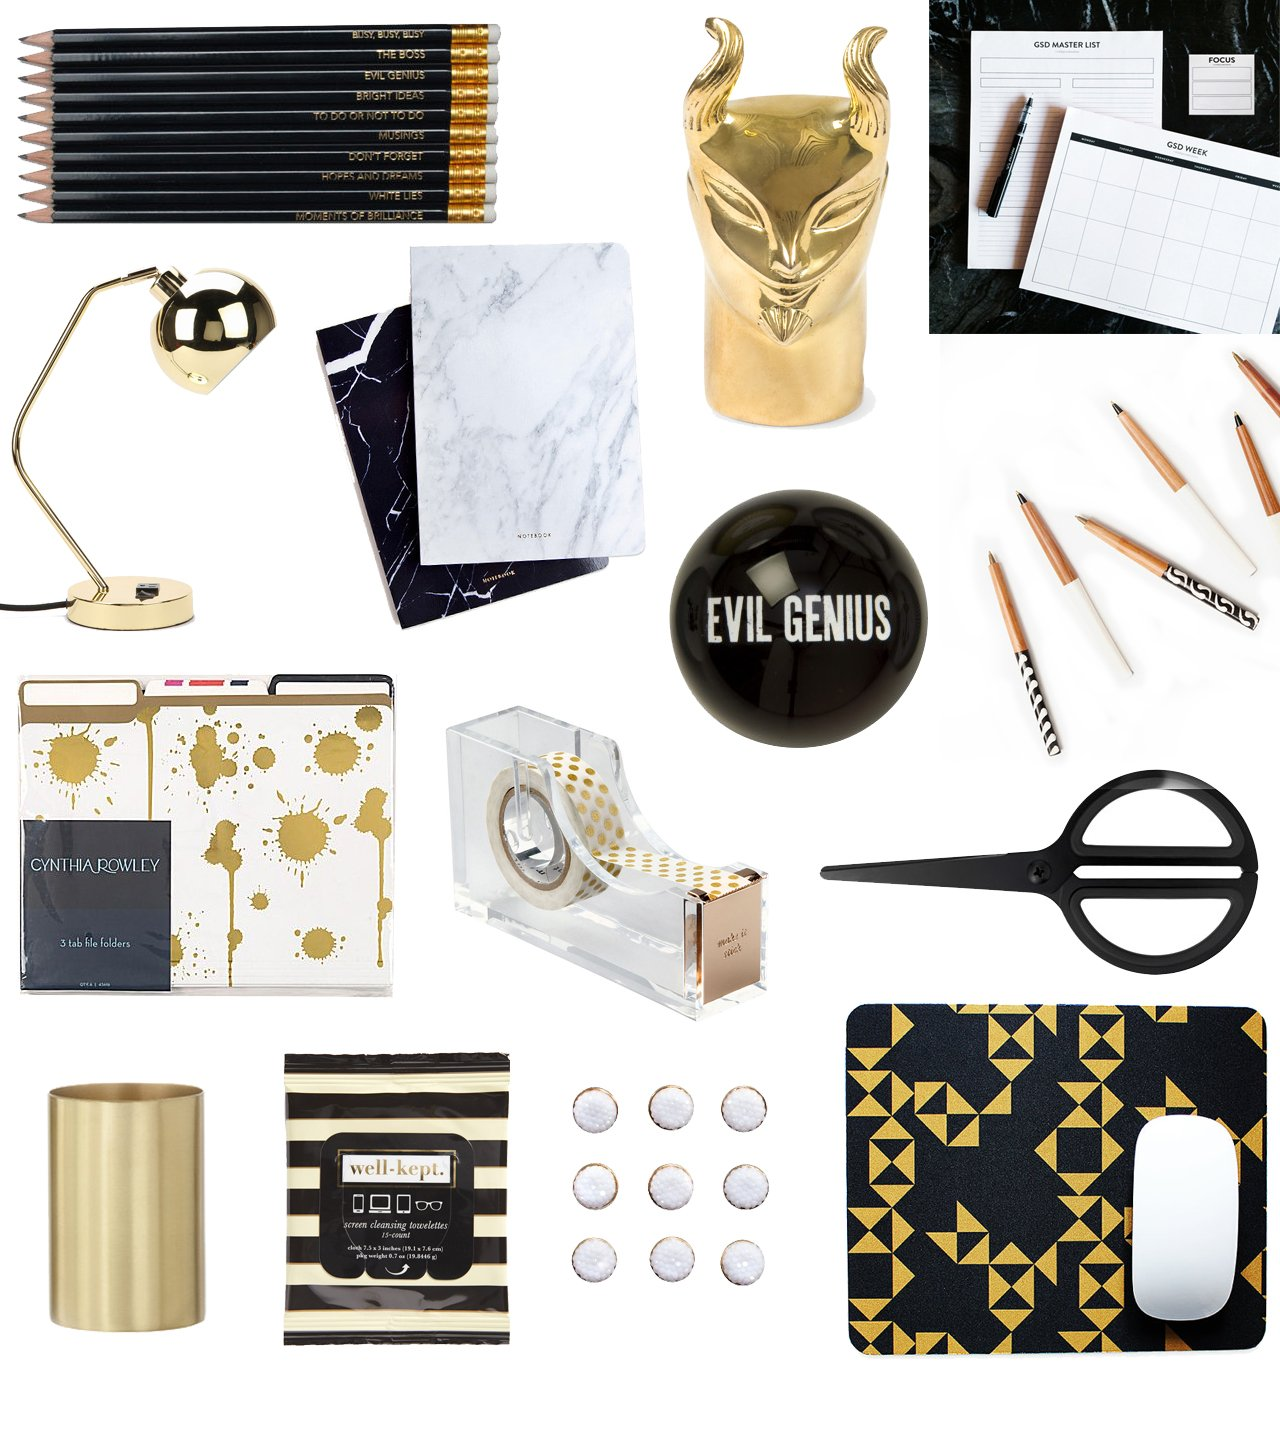 At Top: Russel U0026 Hazel Acrylic Stapler, $24. Above: Clever Pencil Set, $25;  Jonathan Adler Brass Devil Pencil Sharpener, $95; Meg Biram GSD Notepad ...